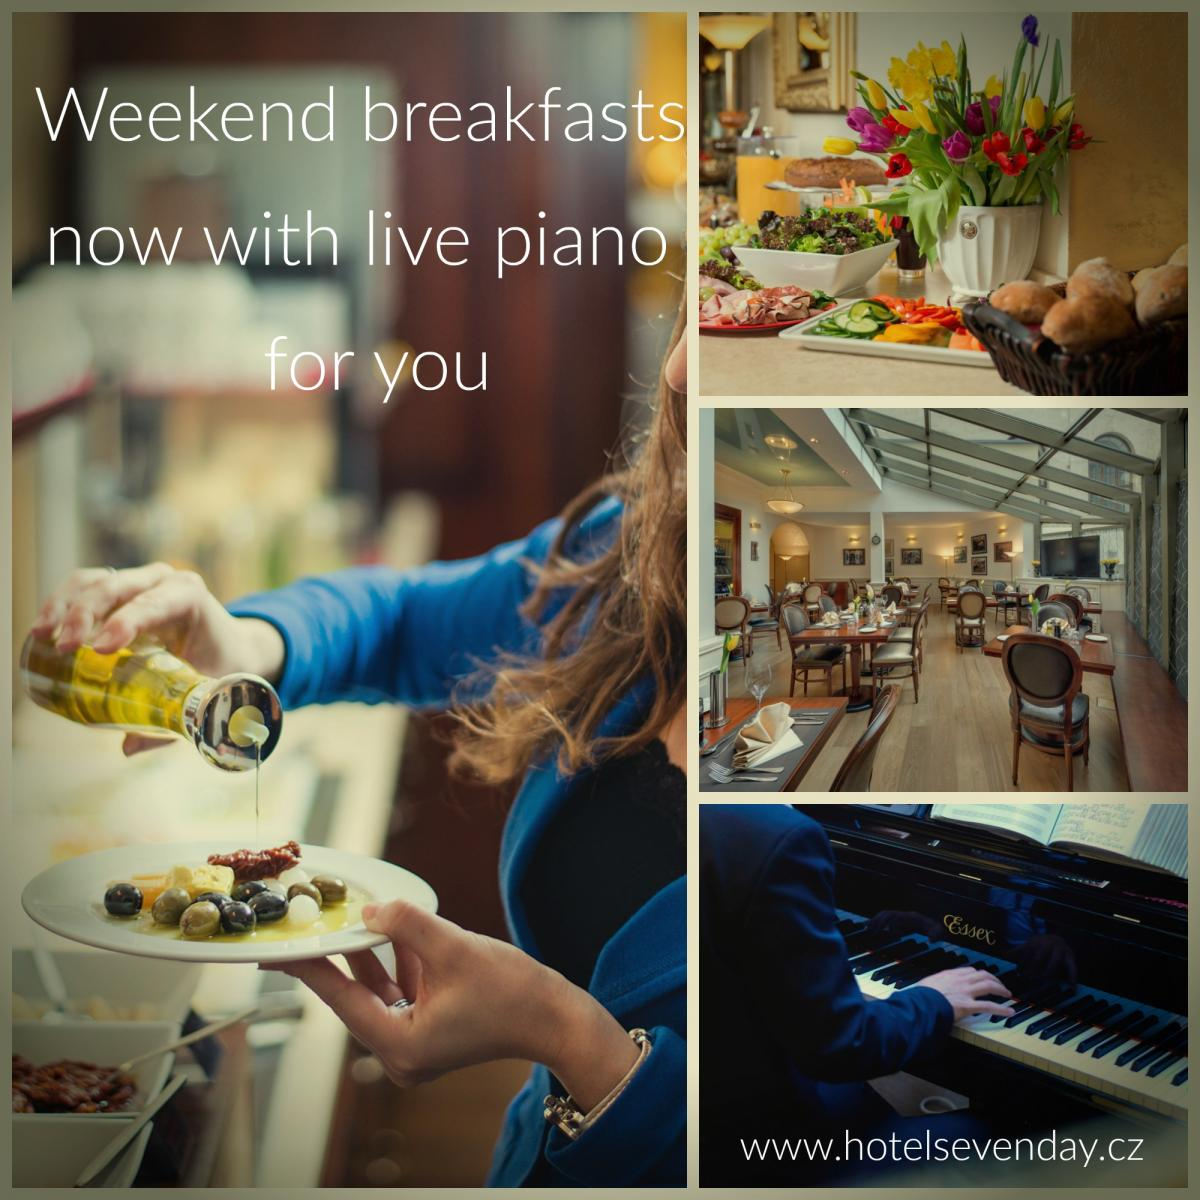 Live piano at weekend breakfasts